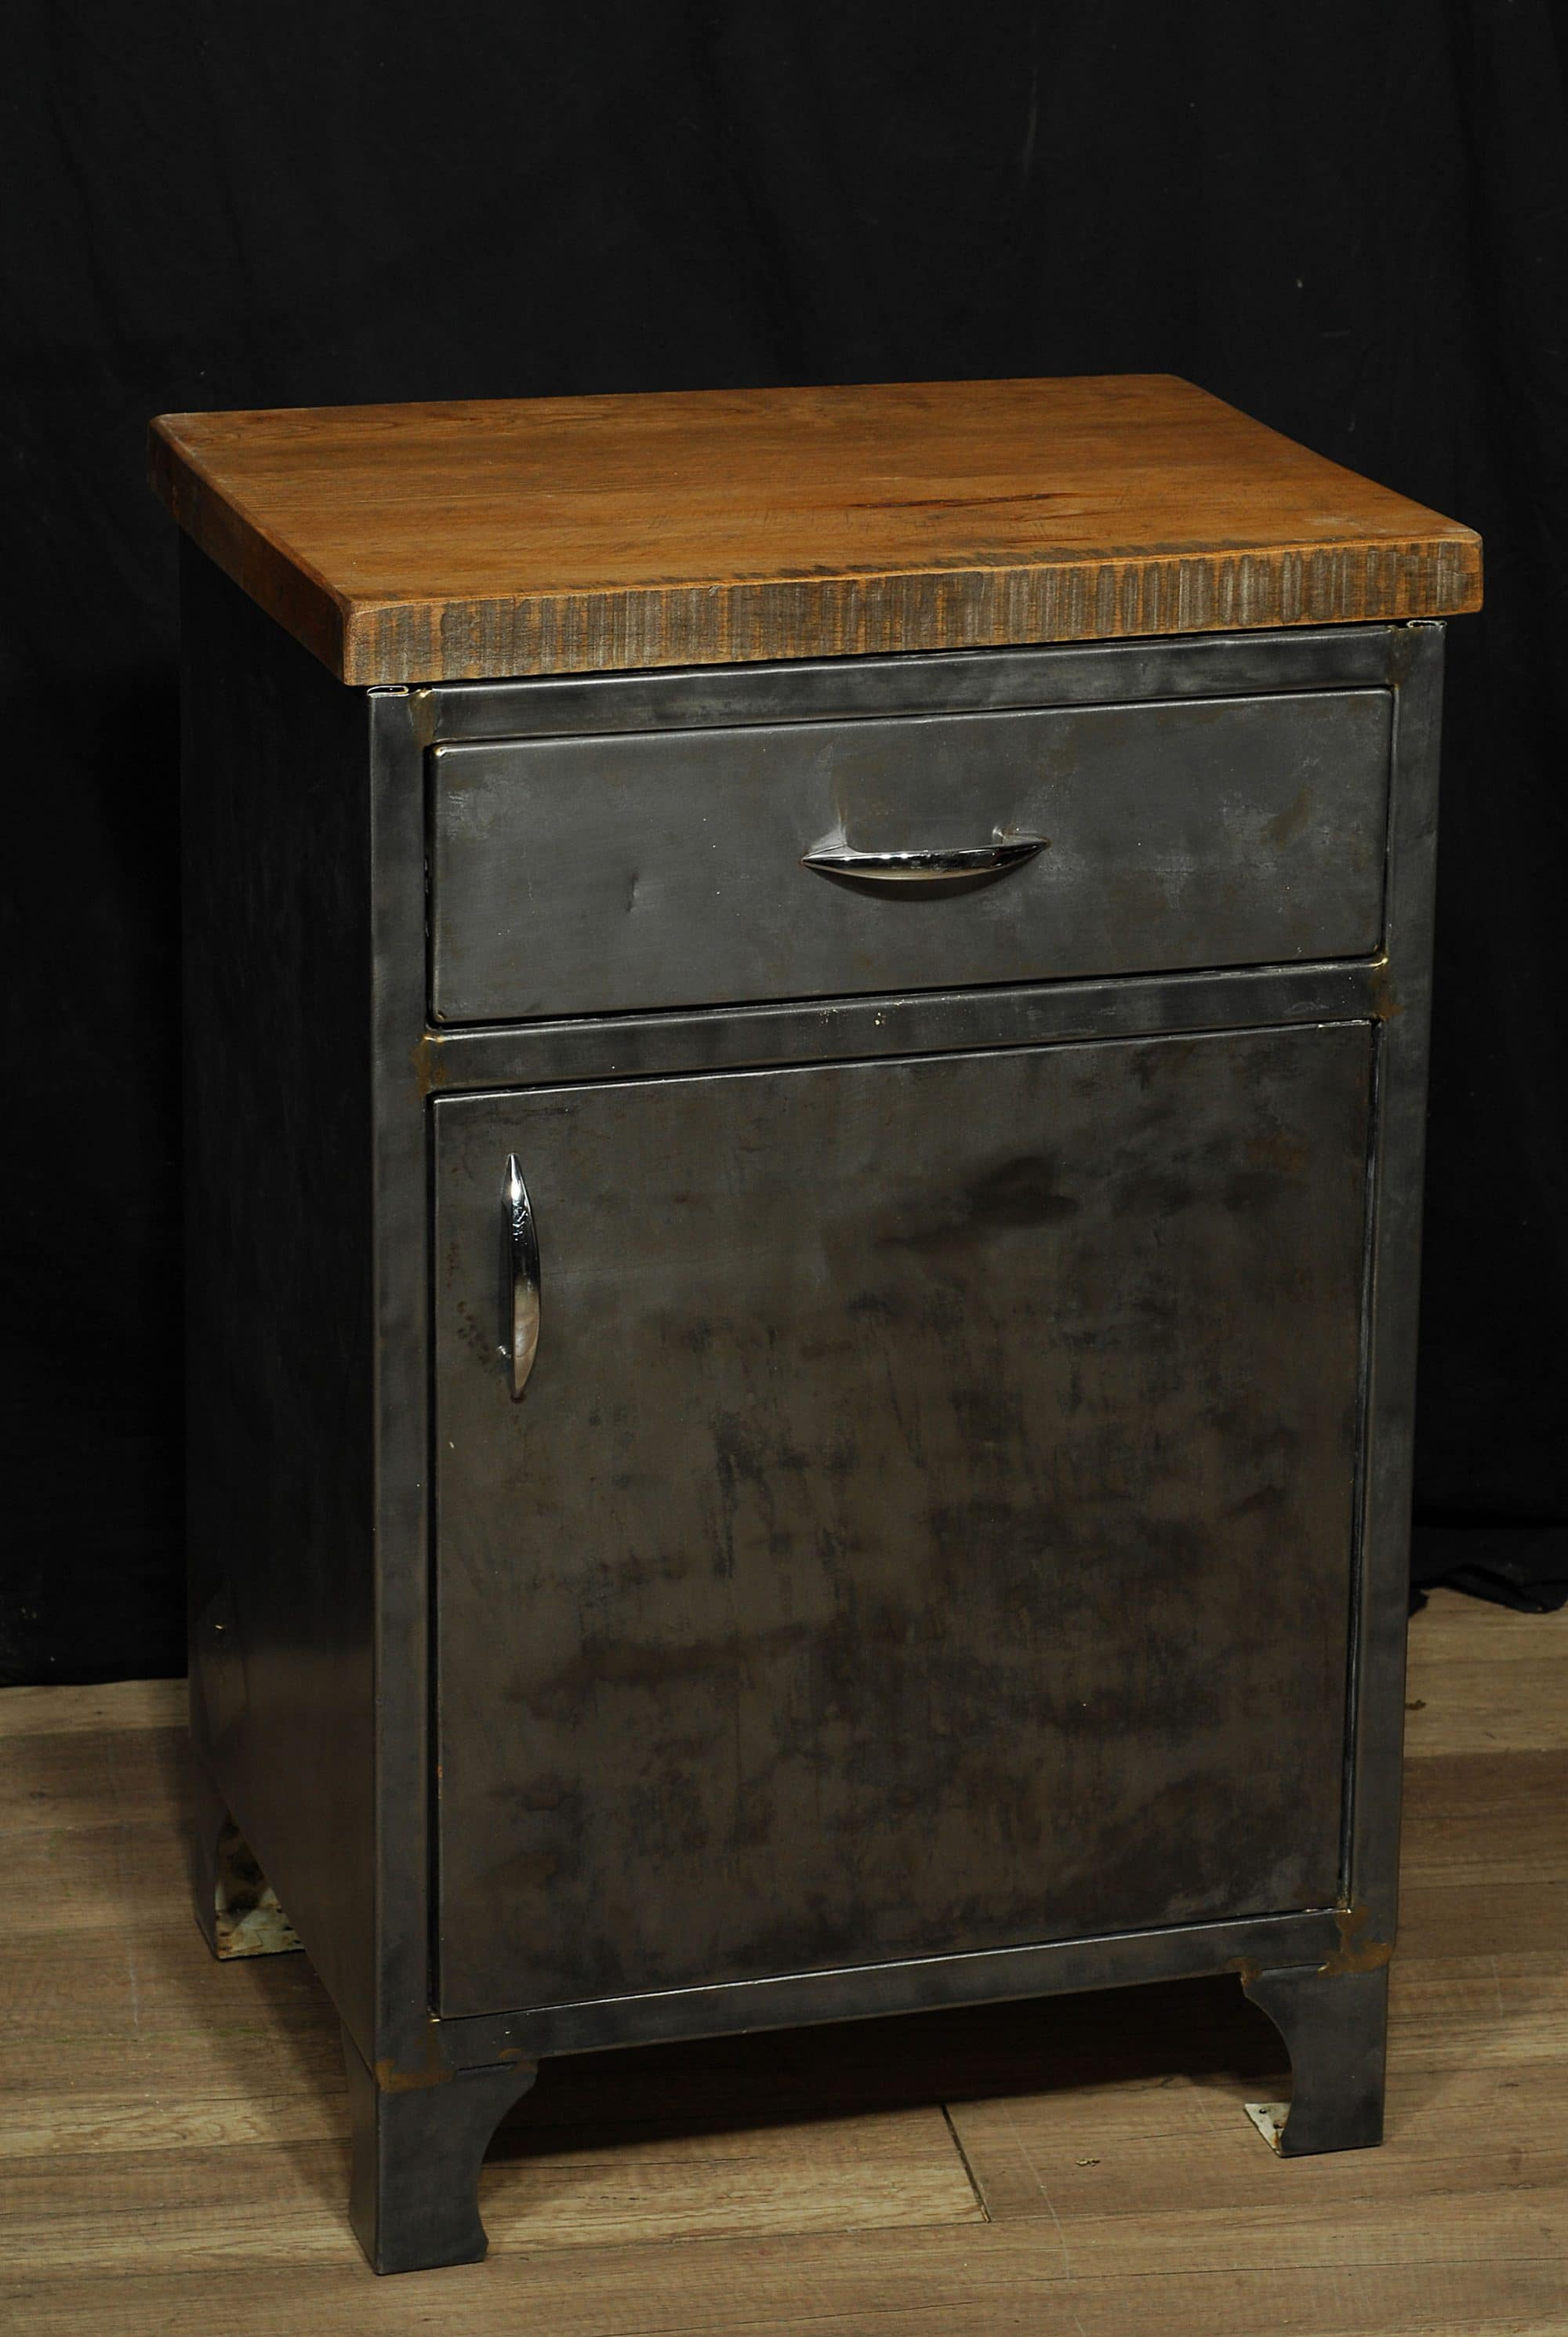 Table De Chevet Industriel Cabinet Ou Table De Chevet Industriel Metal Et Bois Industrial Storage Unit 2 Chance Deco